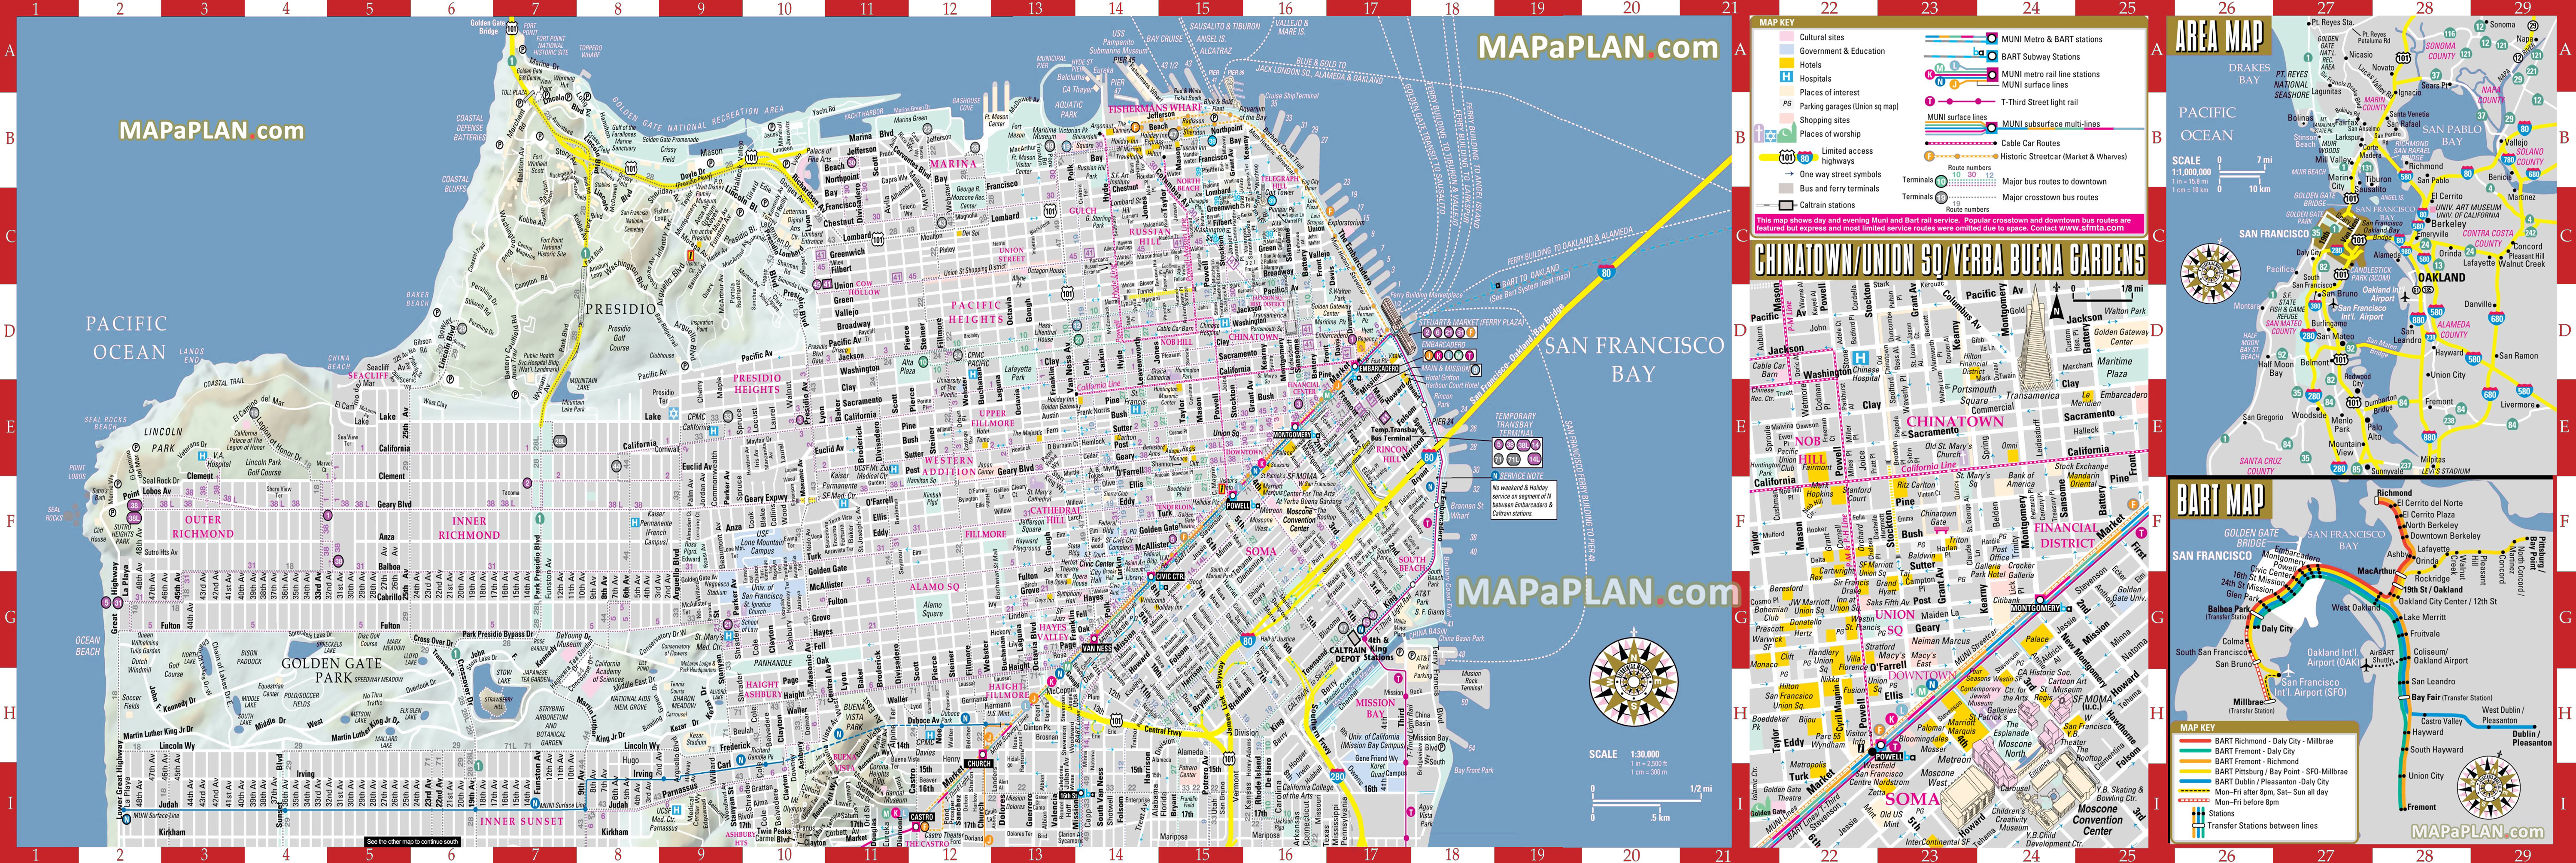 San Francisco Maps - Top Tourist Attractions - Free, Printable City - San Francisco City Map Printable